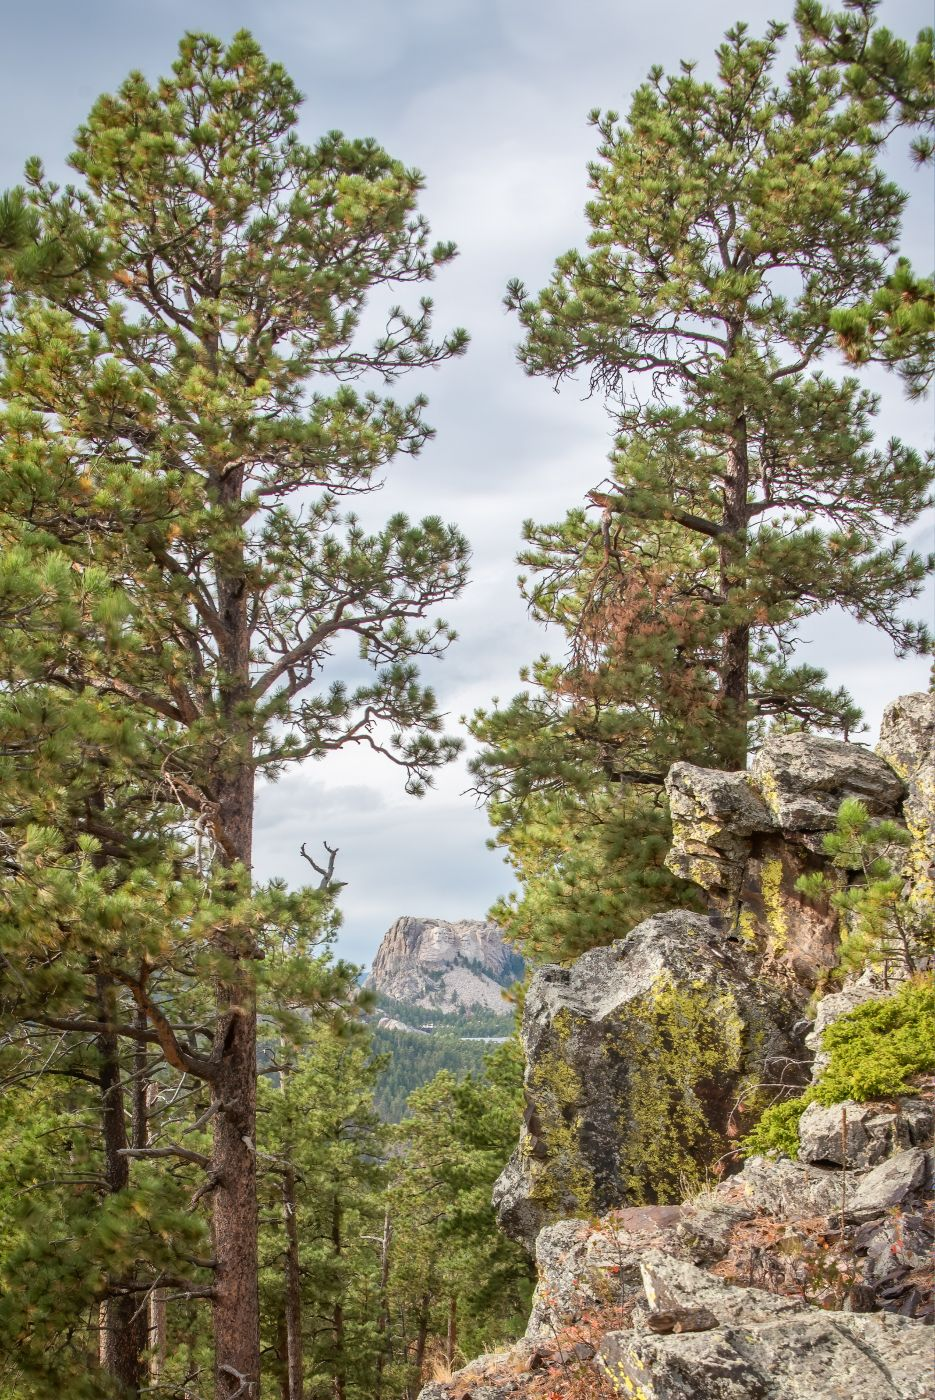 Mount Rushmore, from Norbeck Overlook, USA